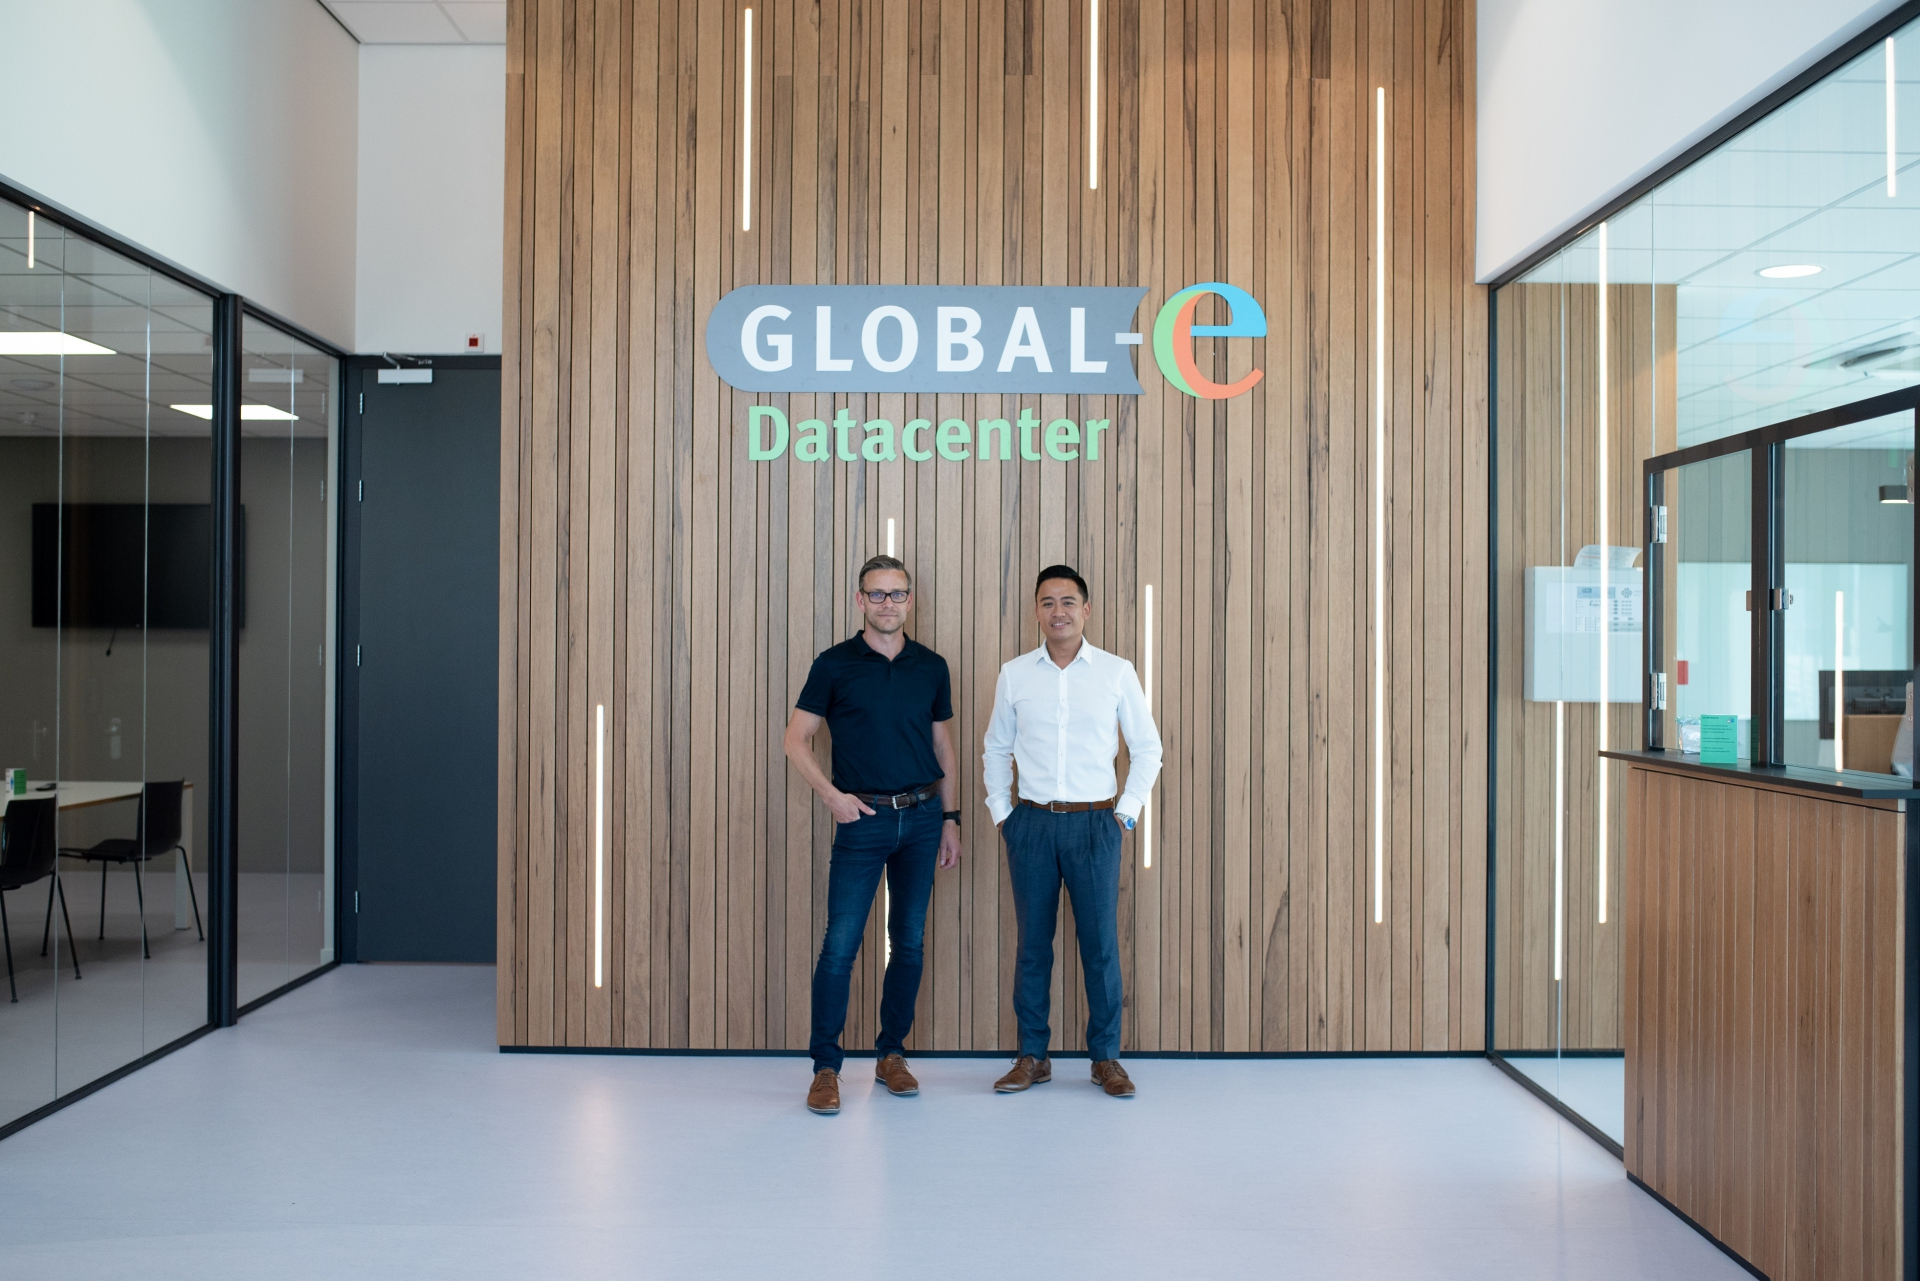 Global-e Datacenter - Elinex